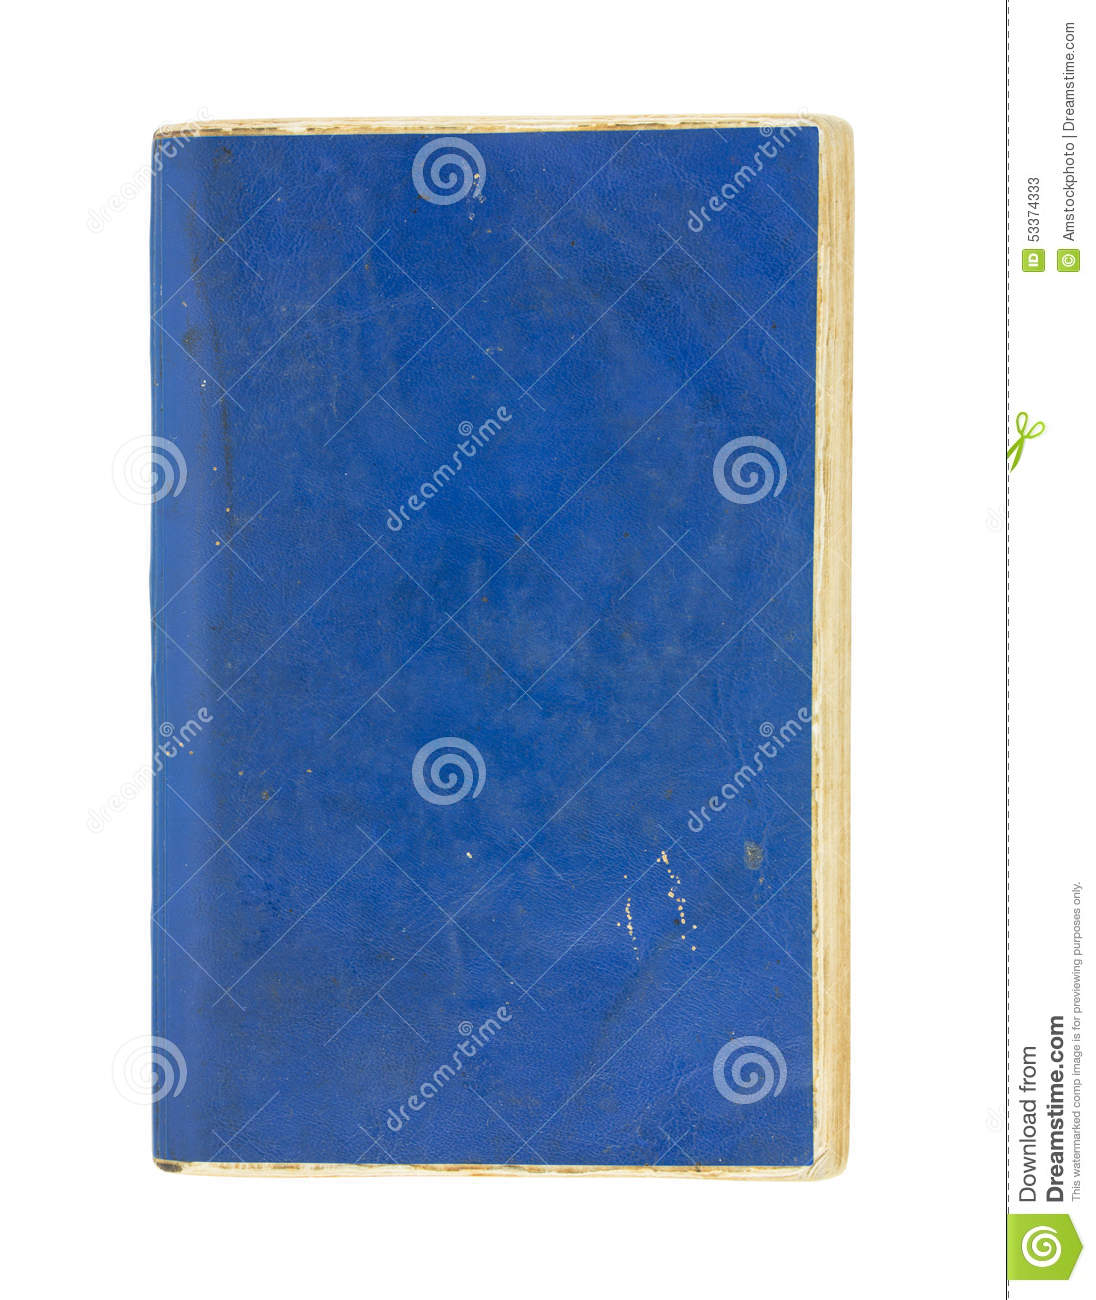 Book Cover White Background : Old blue cover book isolated on white background stock